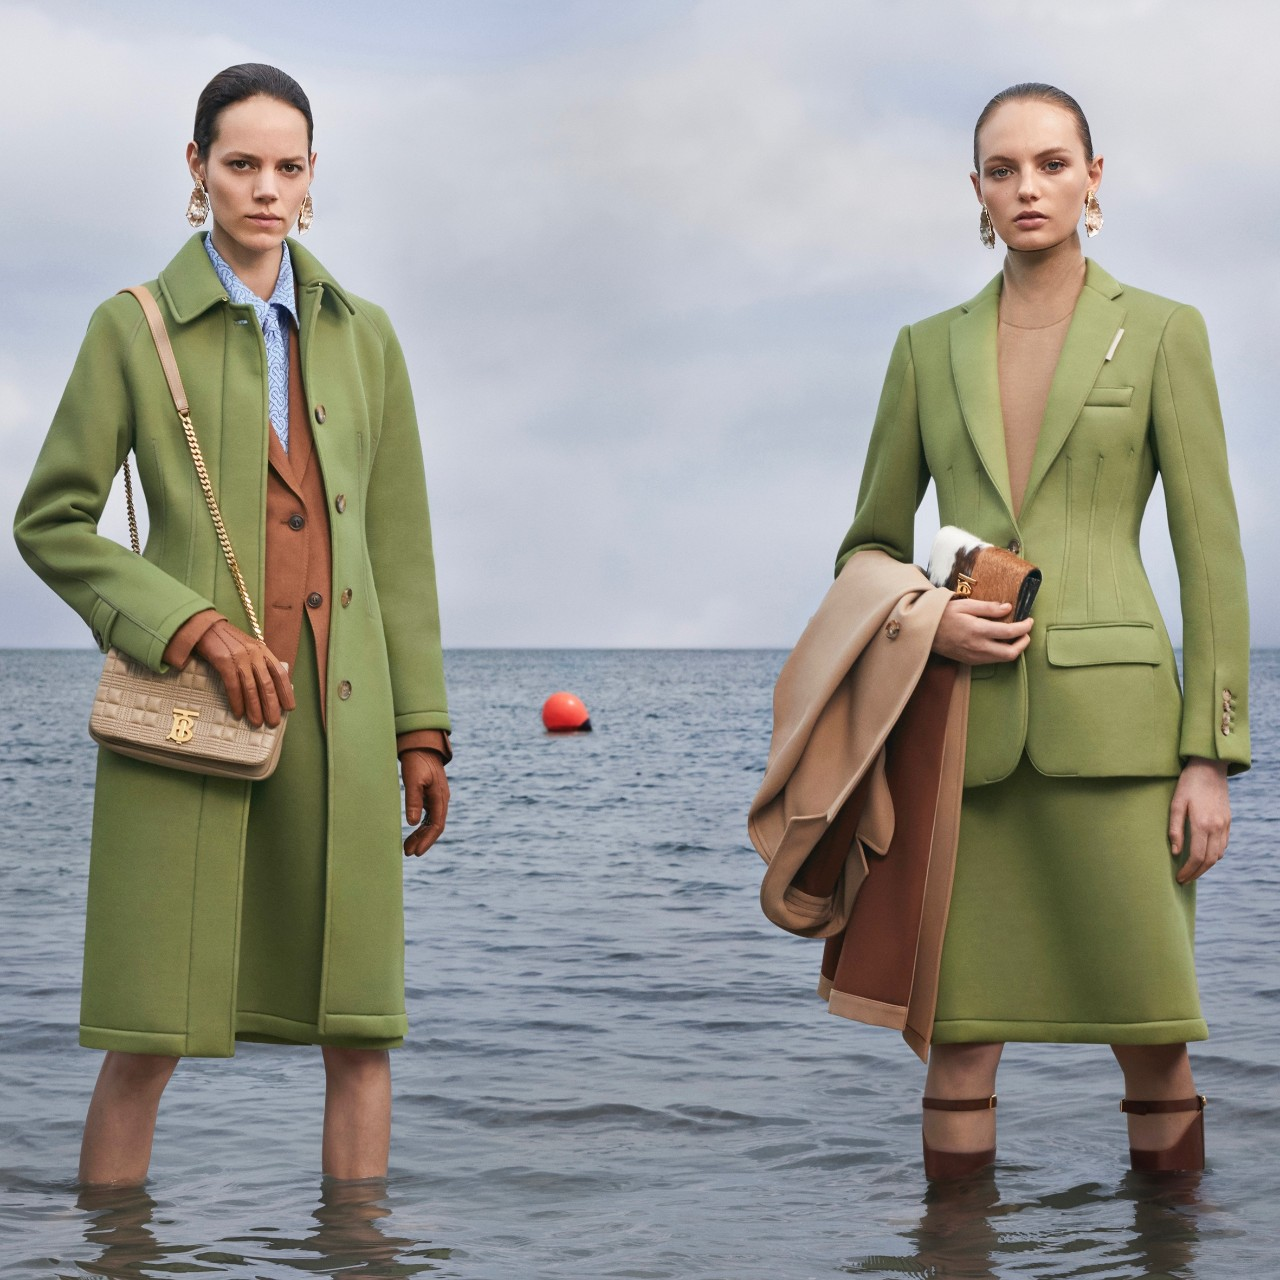 Burberry signs the G7 Fashion Pact (Biarritz)